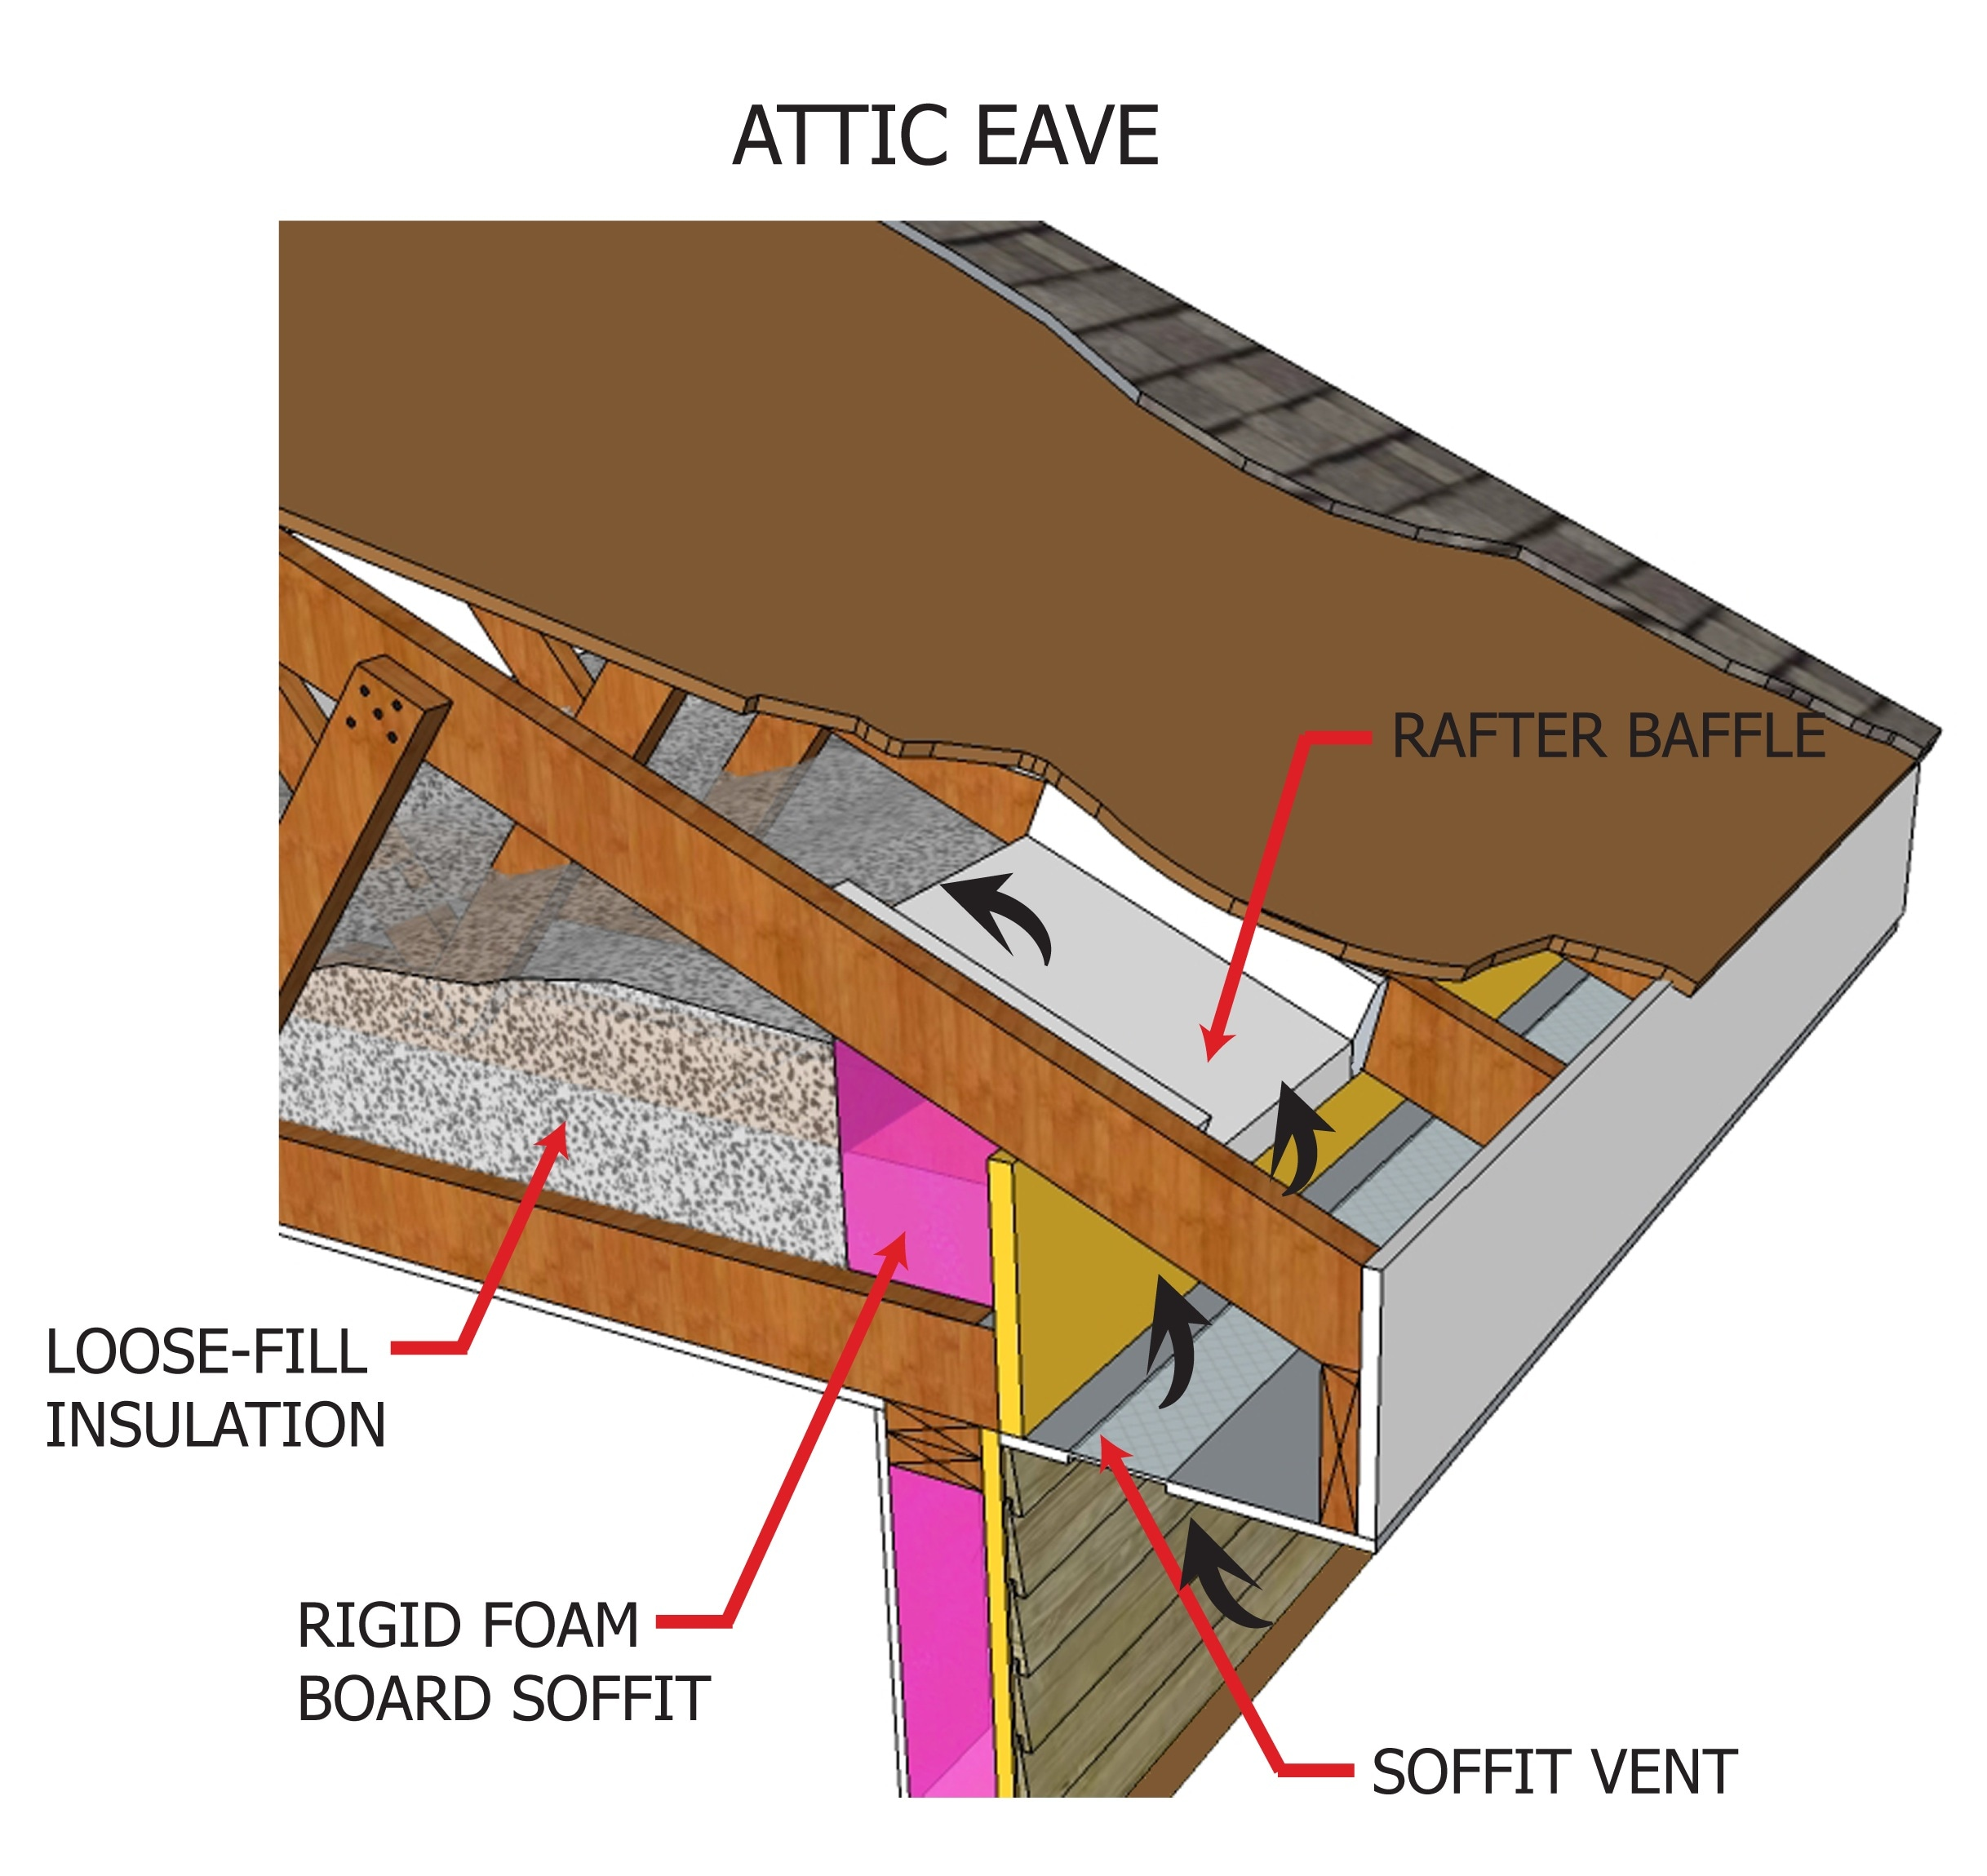 The rafter baffle provides a clear open space for ventilated air to pass between the attic insulation and the underside of the roof deck sheathing.